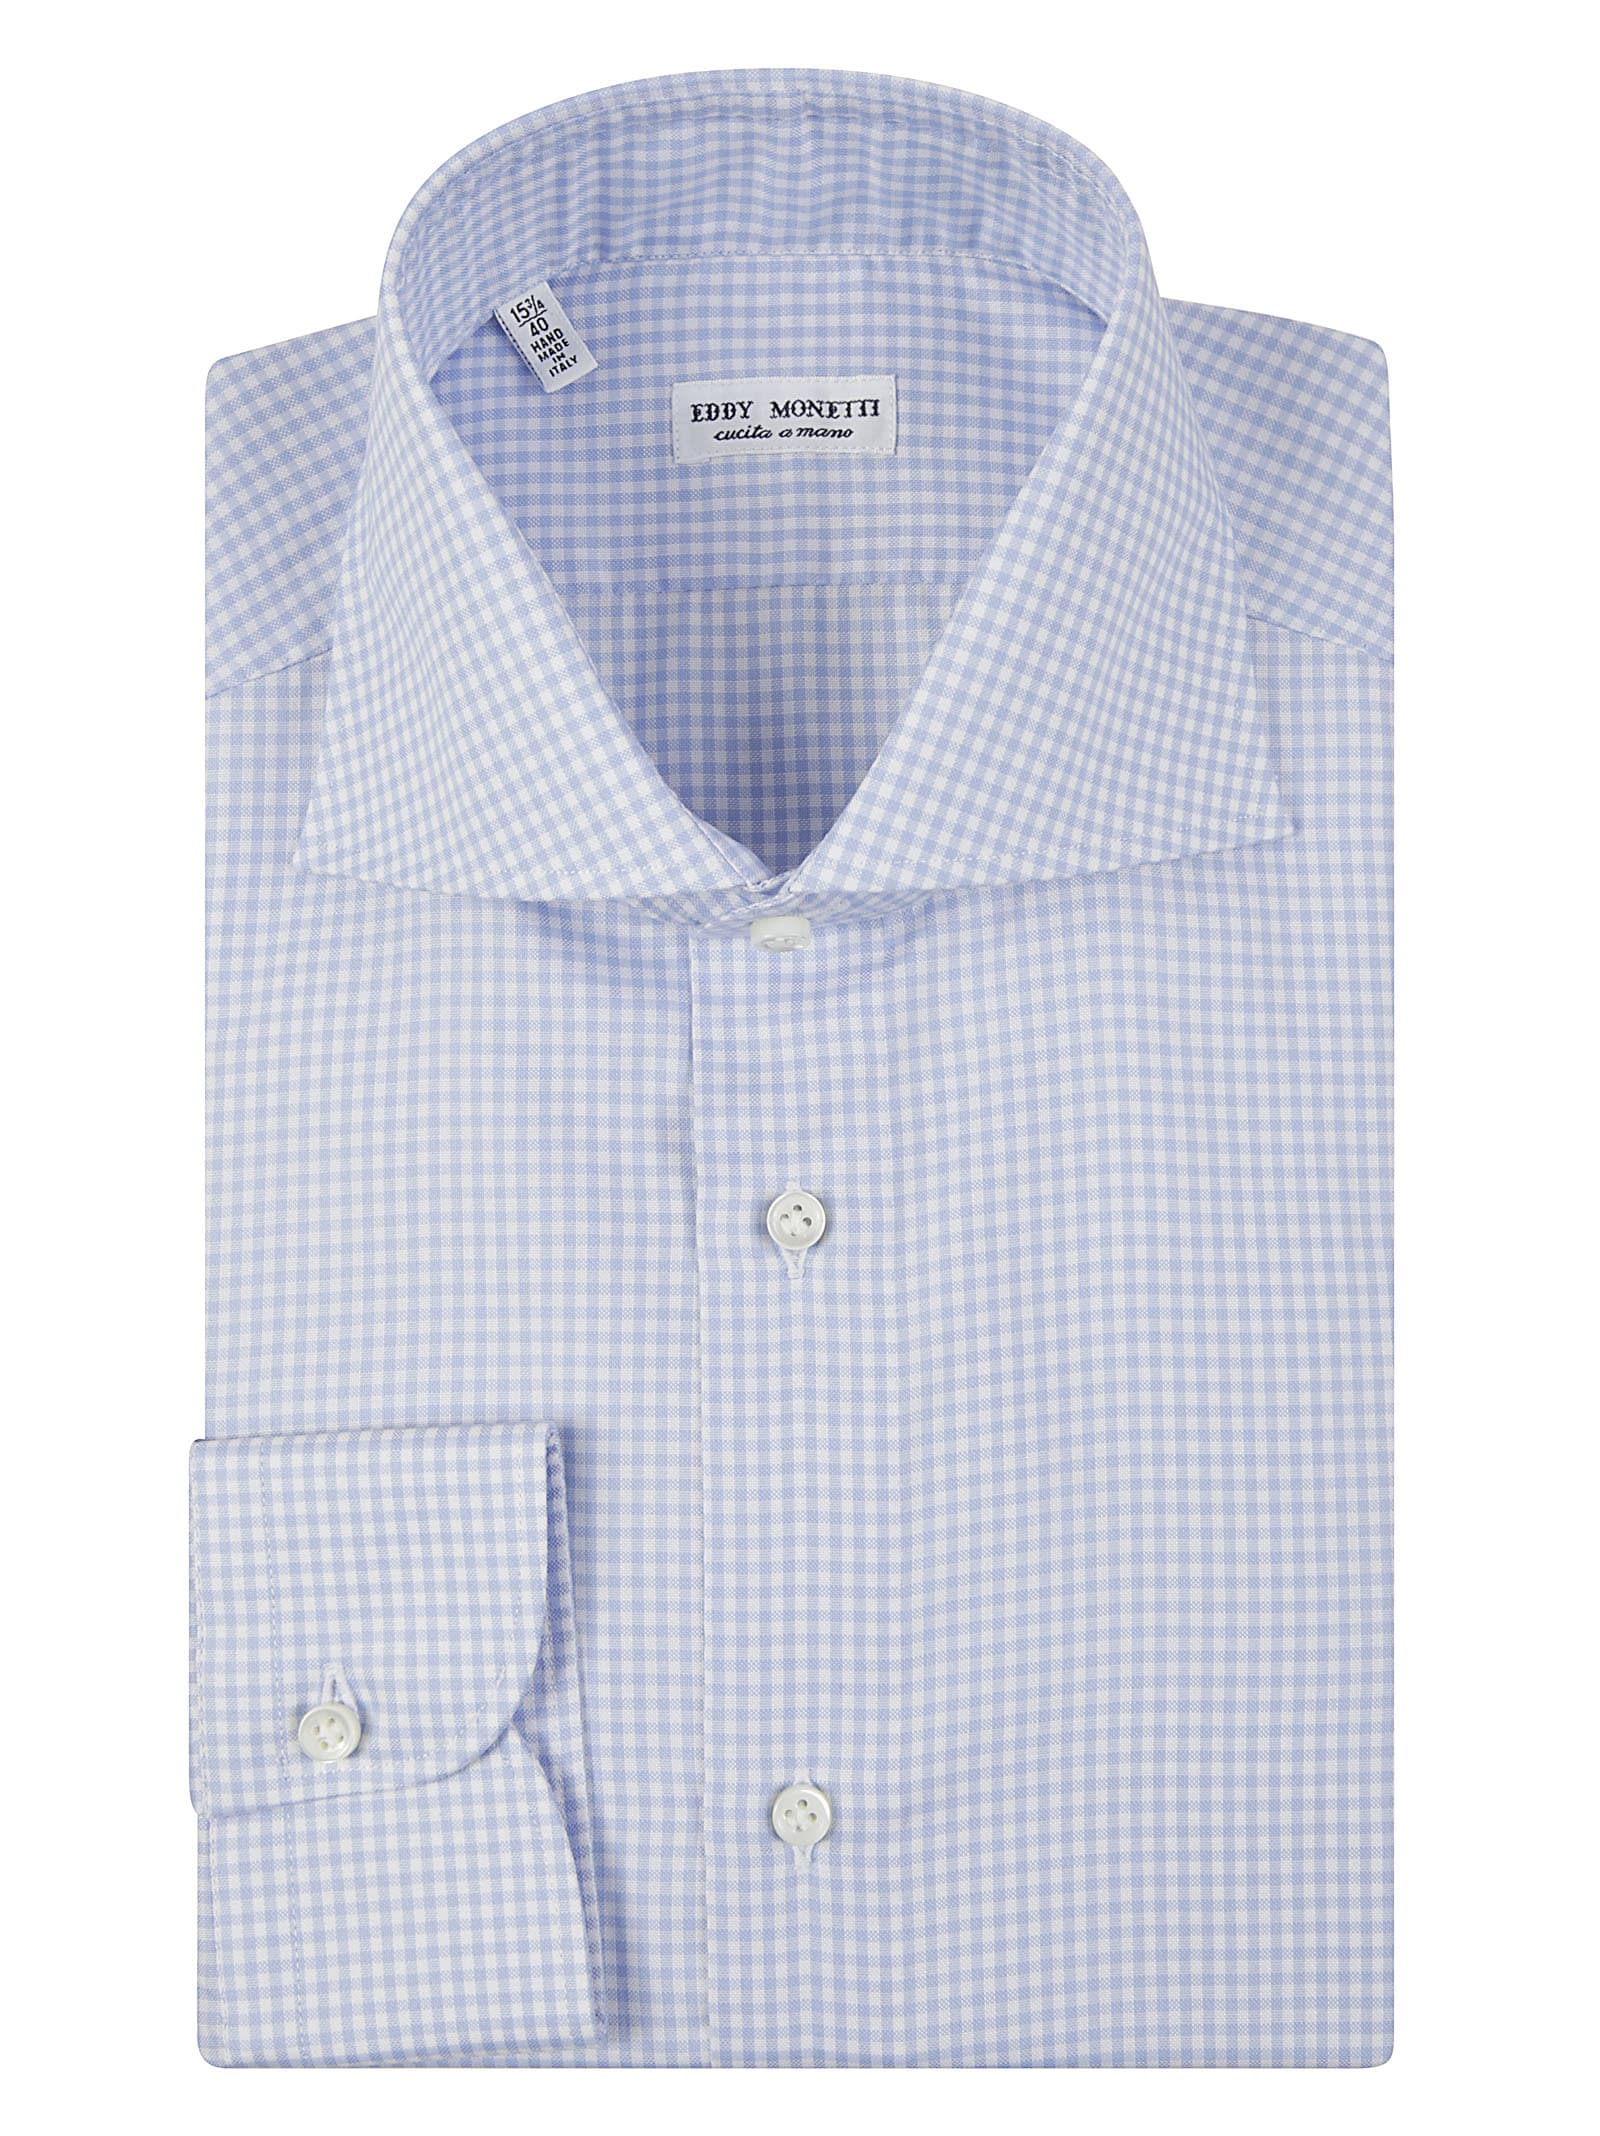 French Collar Square Check Shirt